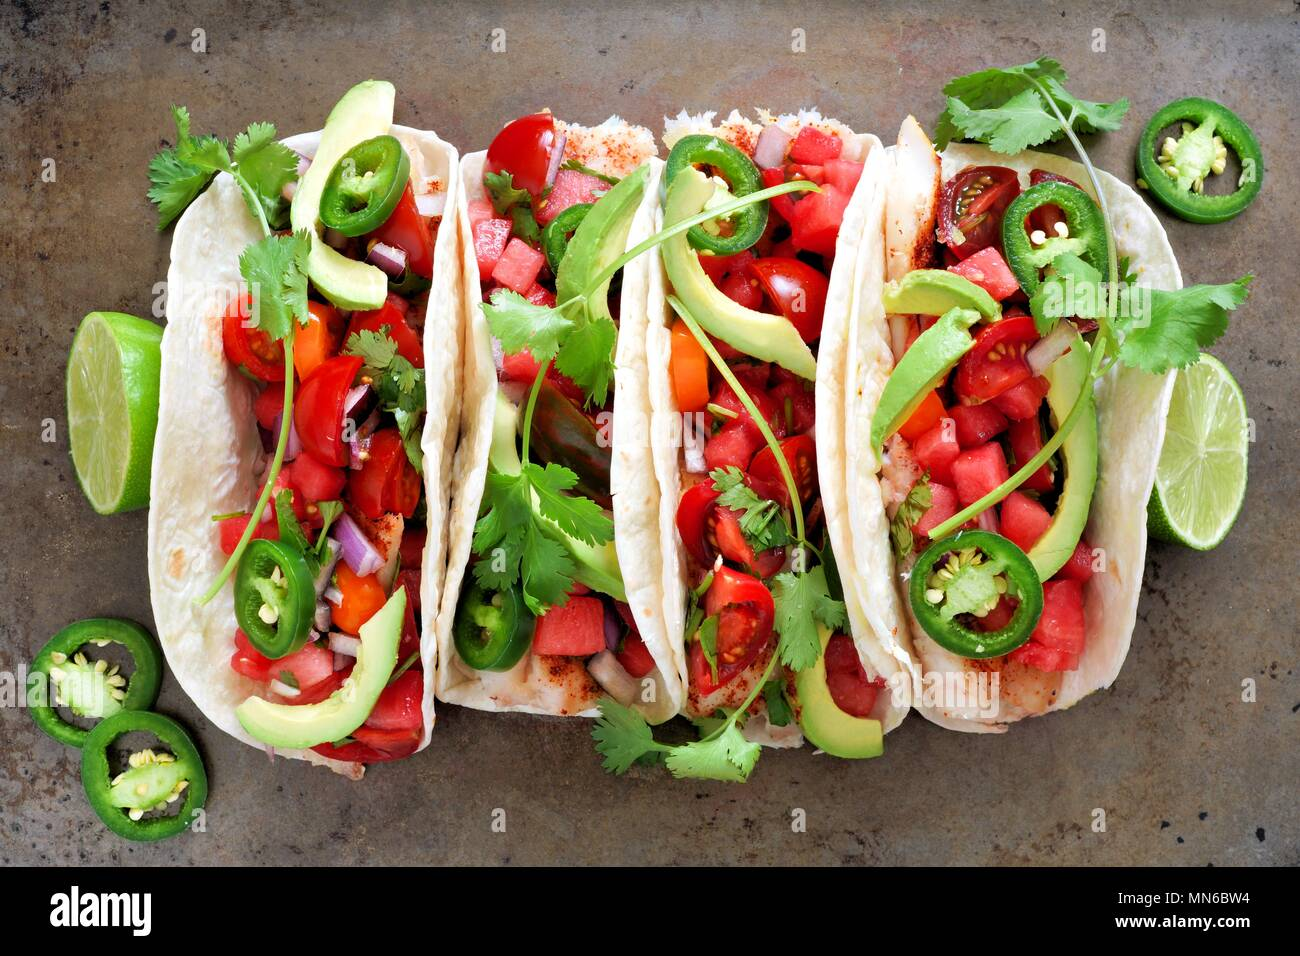 Spicy fish tacos with watermelon salsa and avocados, above view on rustic metallic background - Stock Image